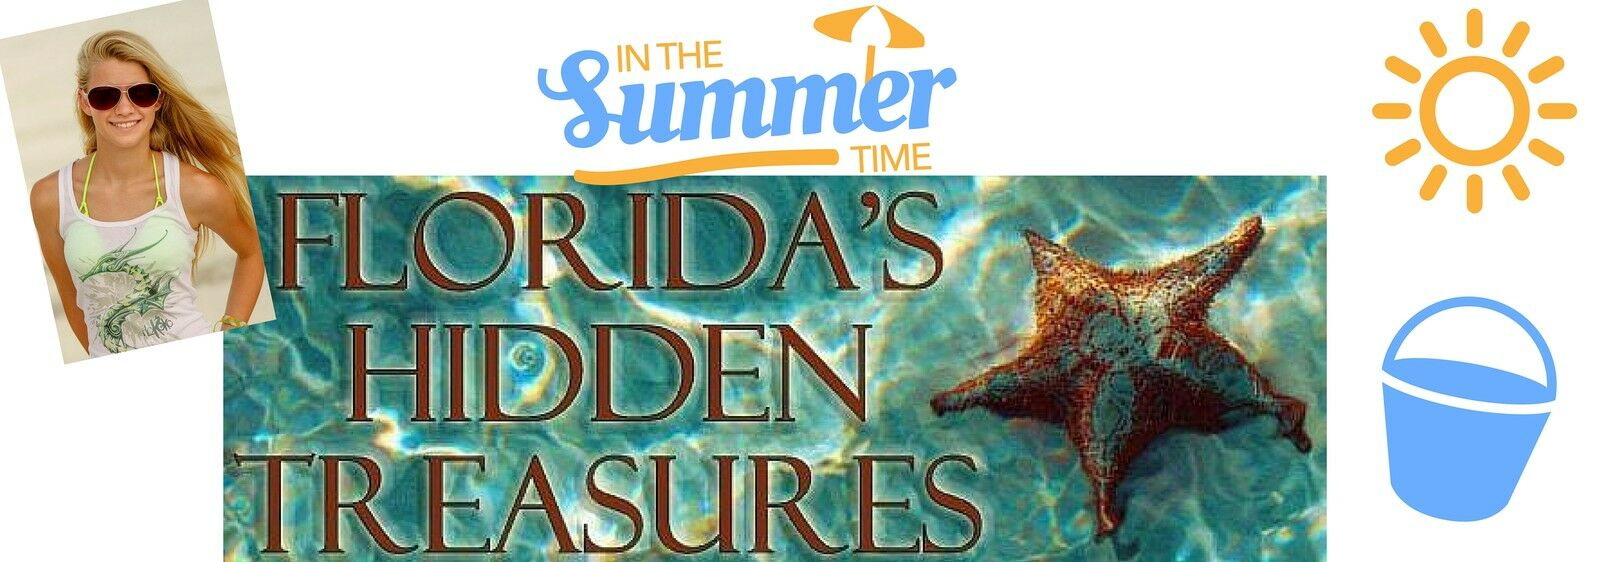 Florida's Hidden Treasures